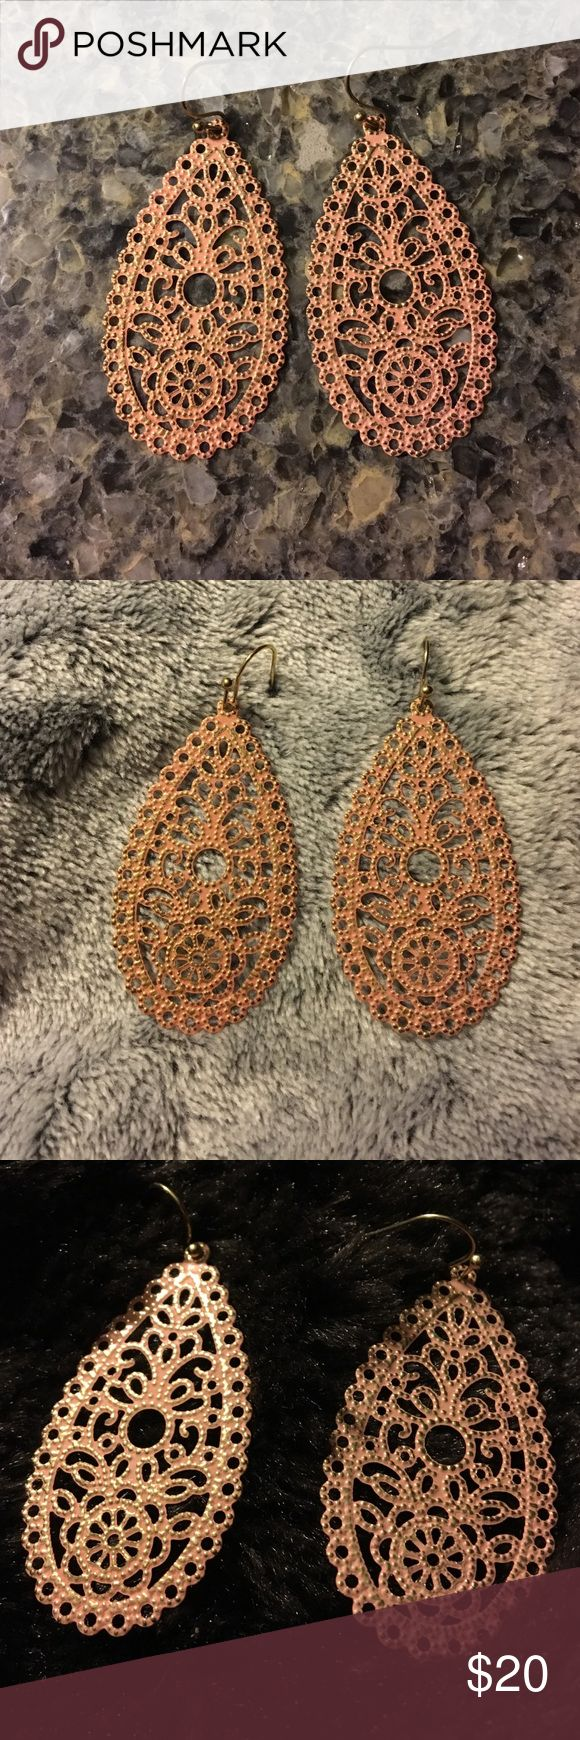 "Lovely pale orange teardrop shaped earrings NWOT These NWOT earrings are wonderfully elegant & casual at the same time. They have a vintage/lace look  & are very lightweight and comfortable to wear. The peachy/pink shade looks coppery in certain light.  They measure a tad over 1.75""L from top of the painted body to the bottom. Back is gold tone (see last picture). They are approx 1"" in diameter at the widest point. Wear them any season.  You'll look amazing! Jewelry Earrings"